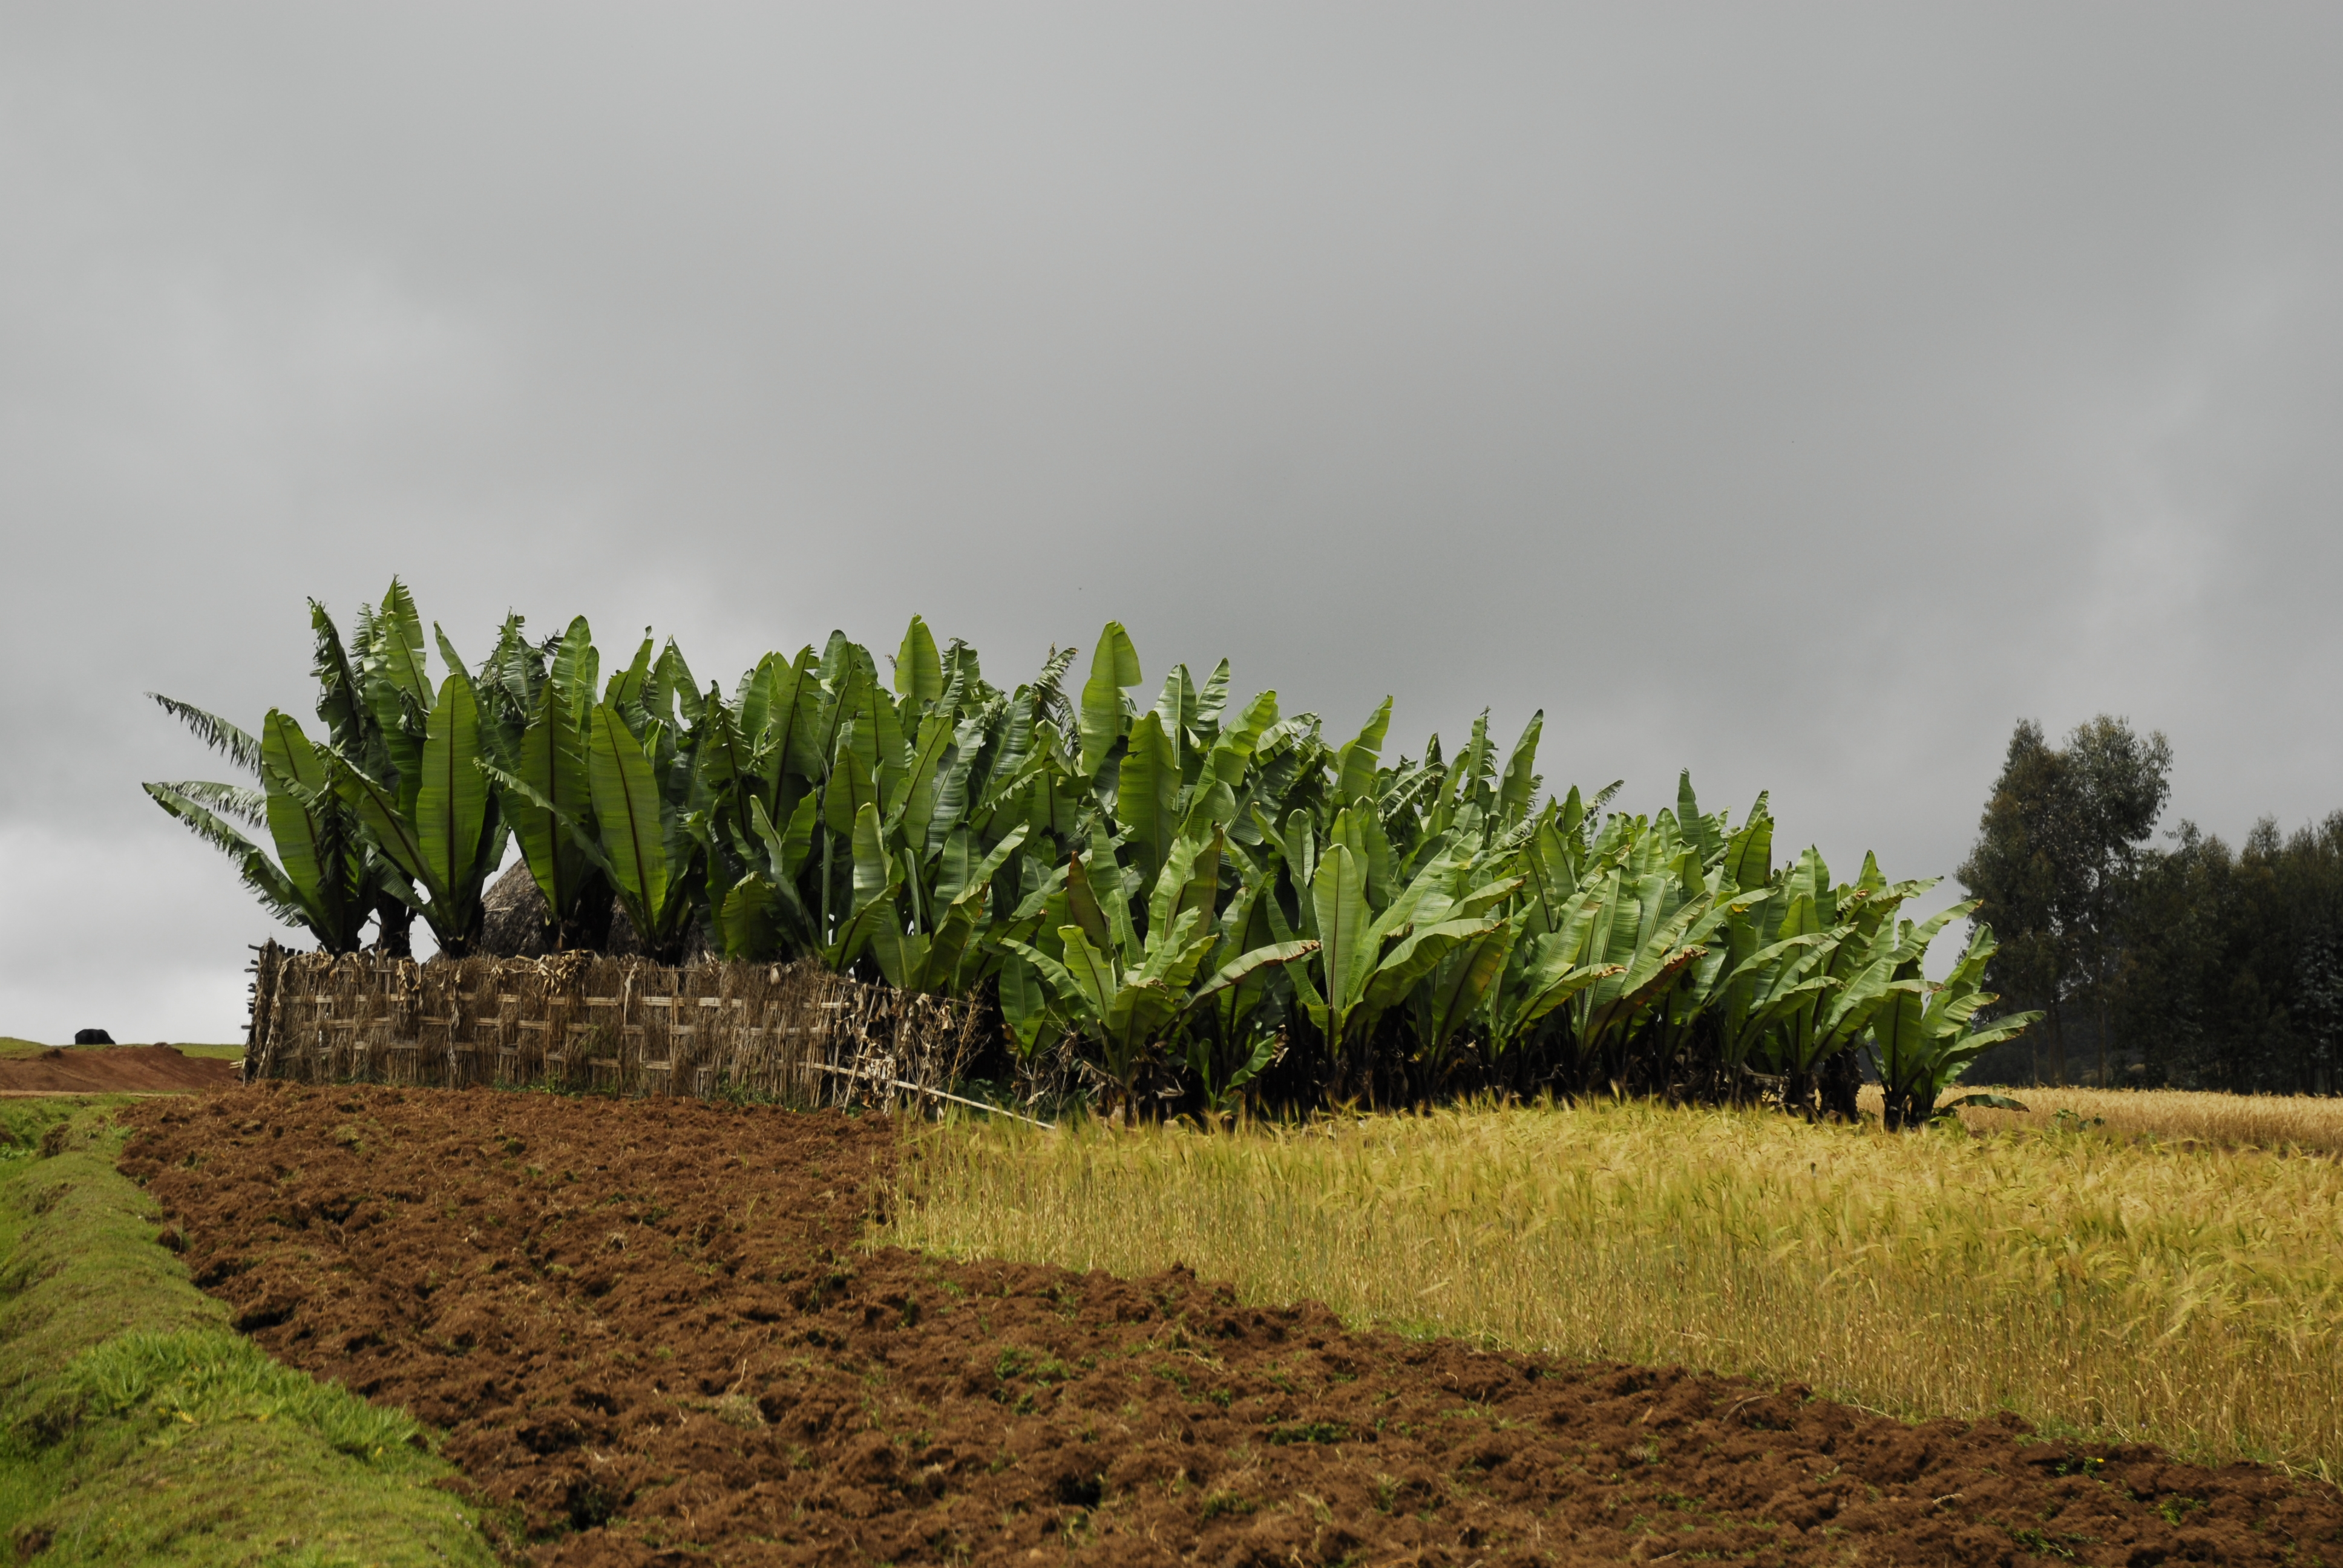 Image showing enset crops growing in Ethiopia